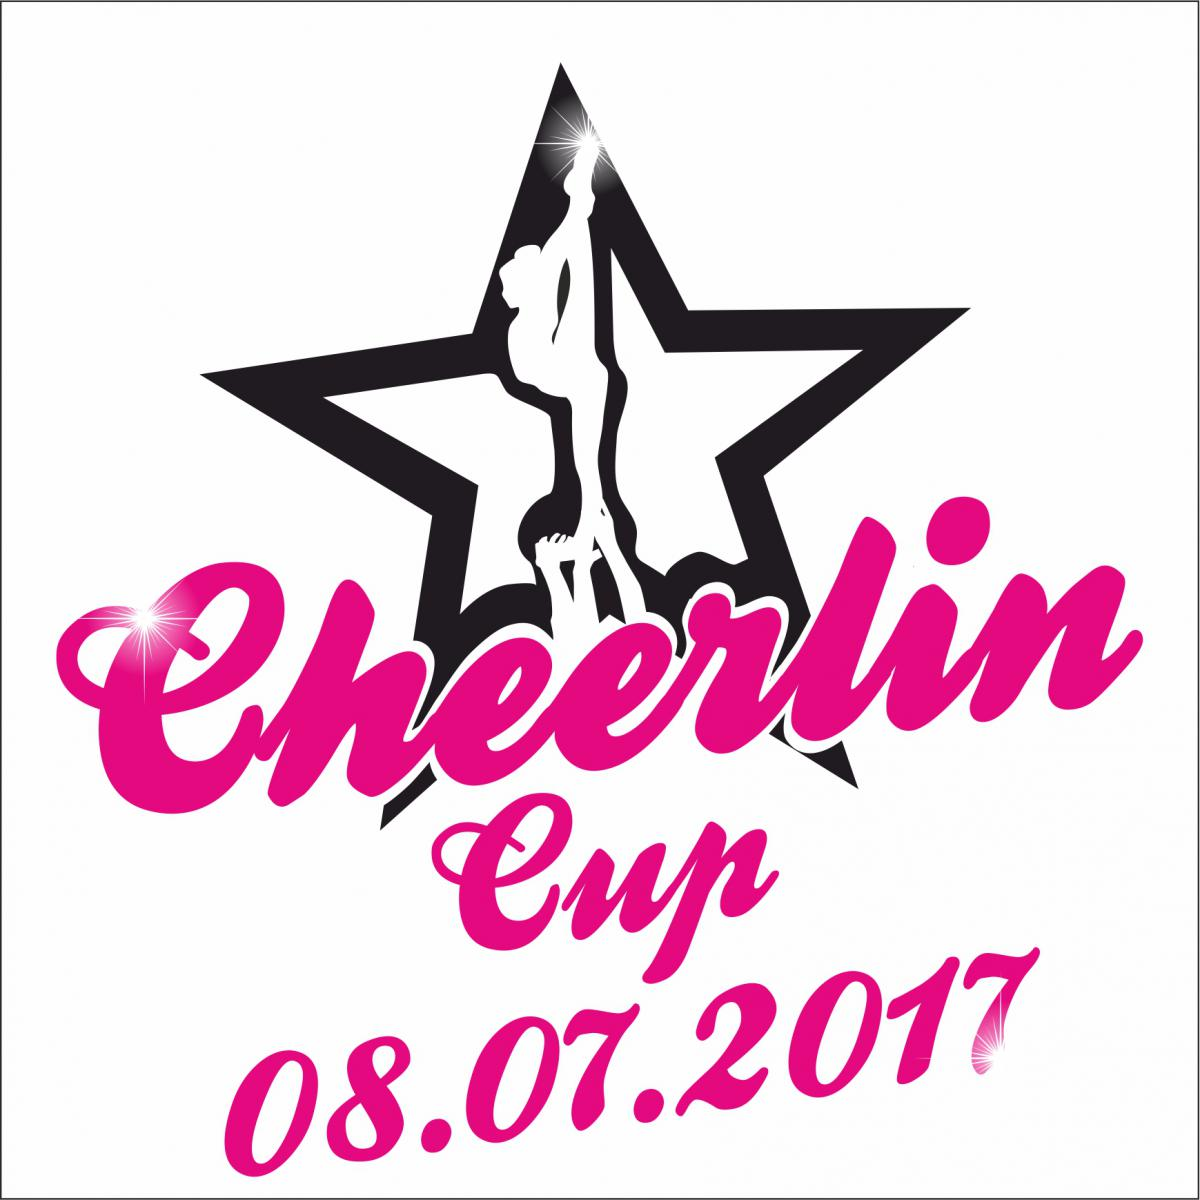 Cheerlin Cup 2017